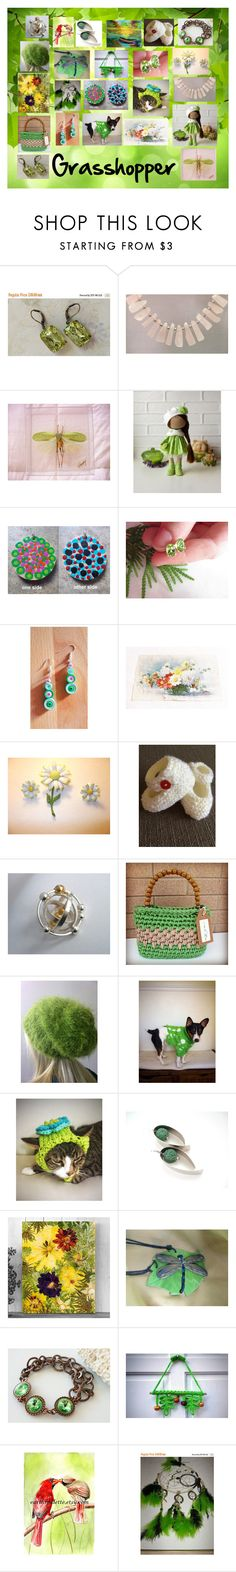 """Grasshopper: Vintage and Handmade Valentines"" by paulinemcewen ❤ liked on Polyvore featuring vintage"